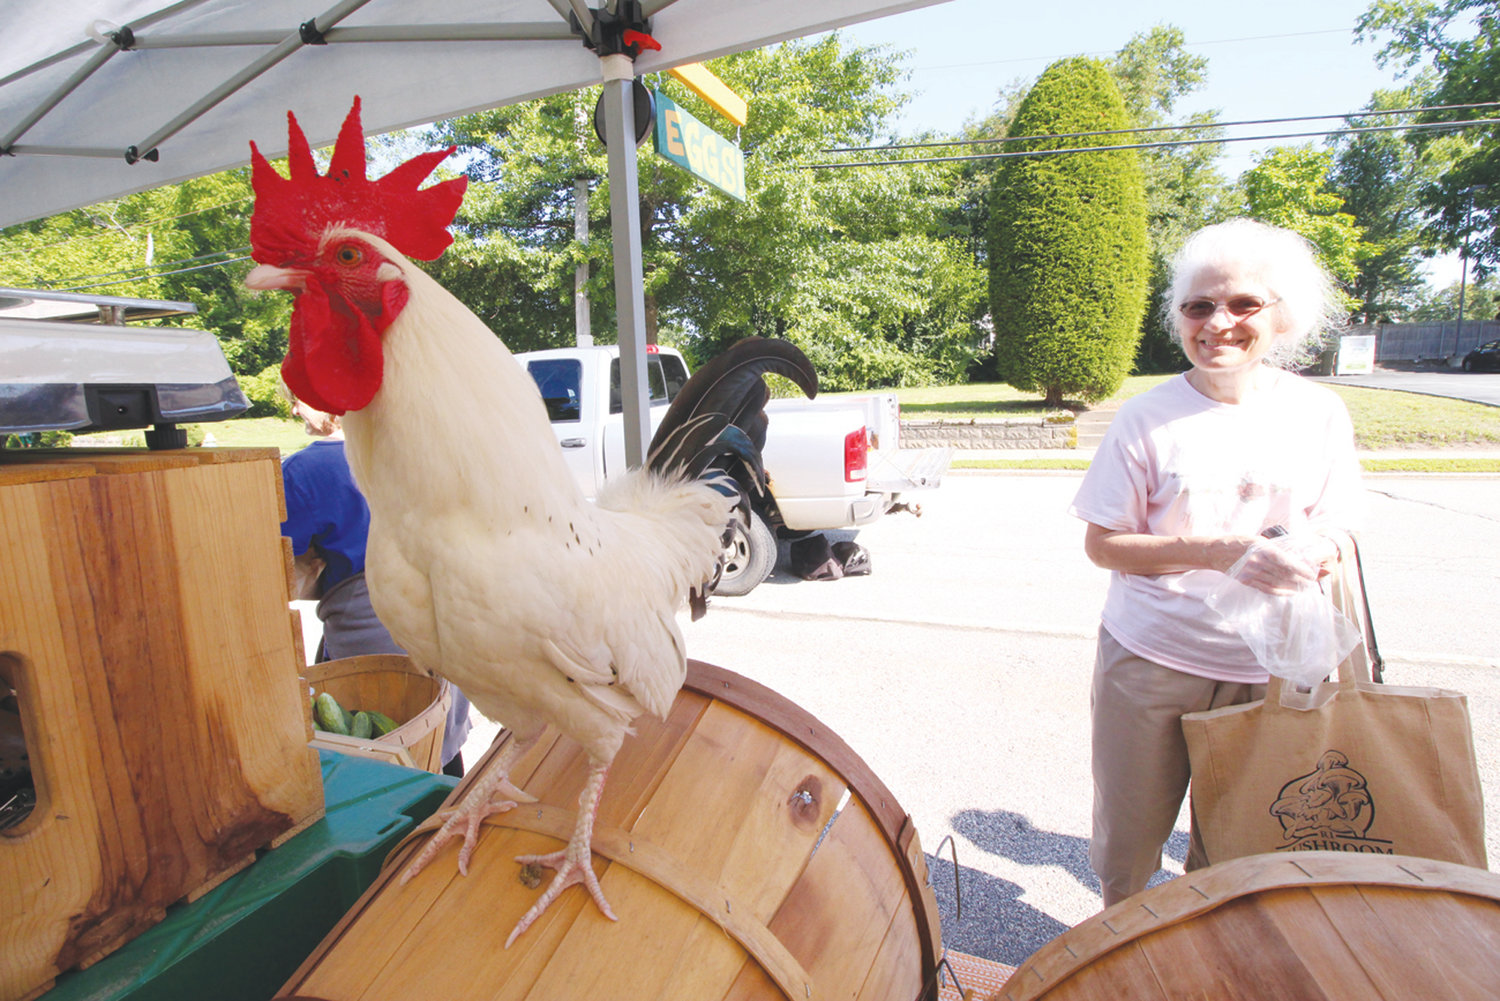 RULE OF THE ROOST: In this August photo, Moe poses atop a barrel at the gC Farms stand at the Pawtuxet Village Farmers Market on Saturday as Sandra Cooper looks on. The rooster serves as an unofficial mascot for the market.